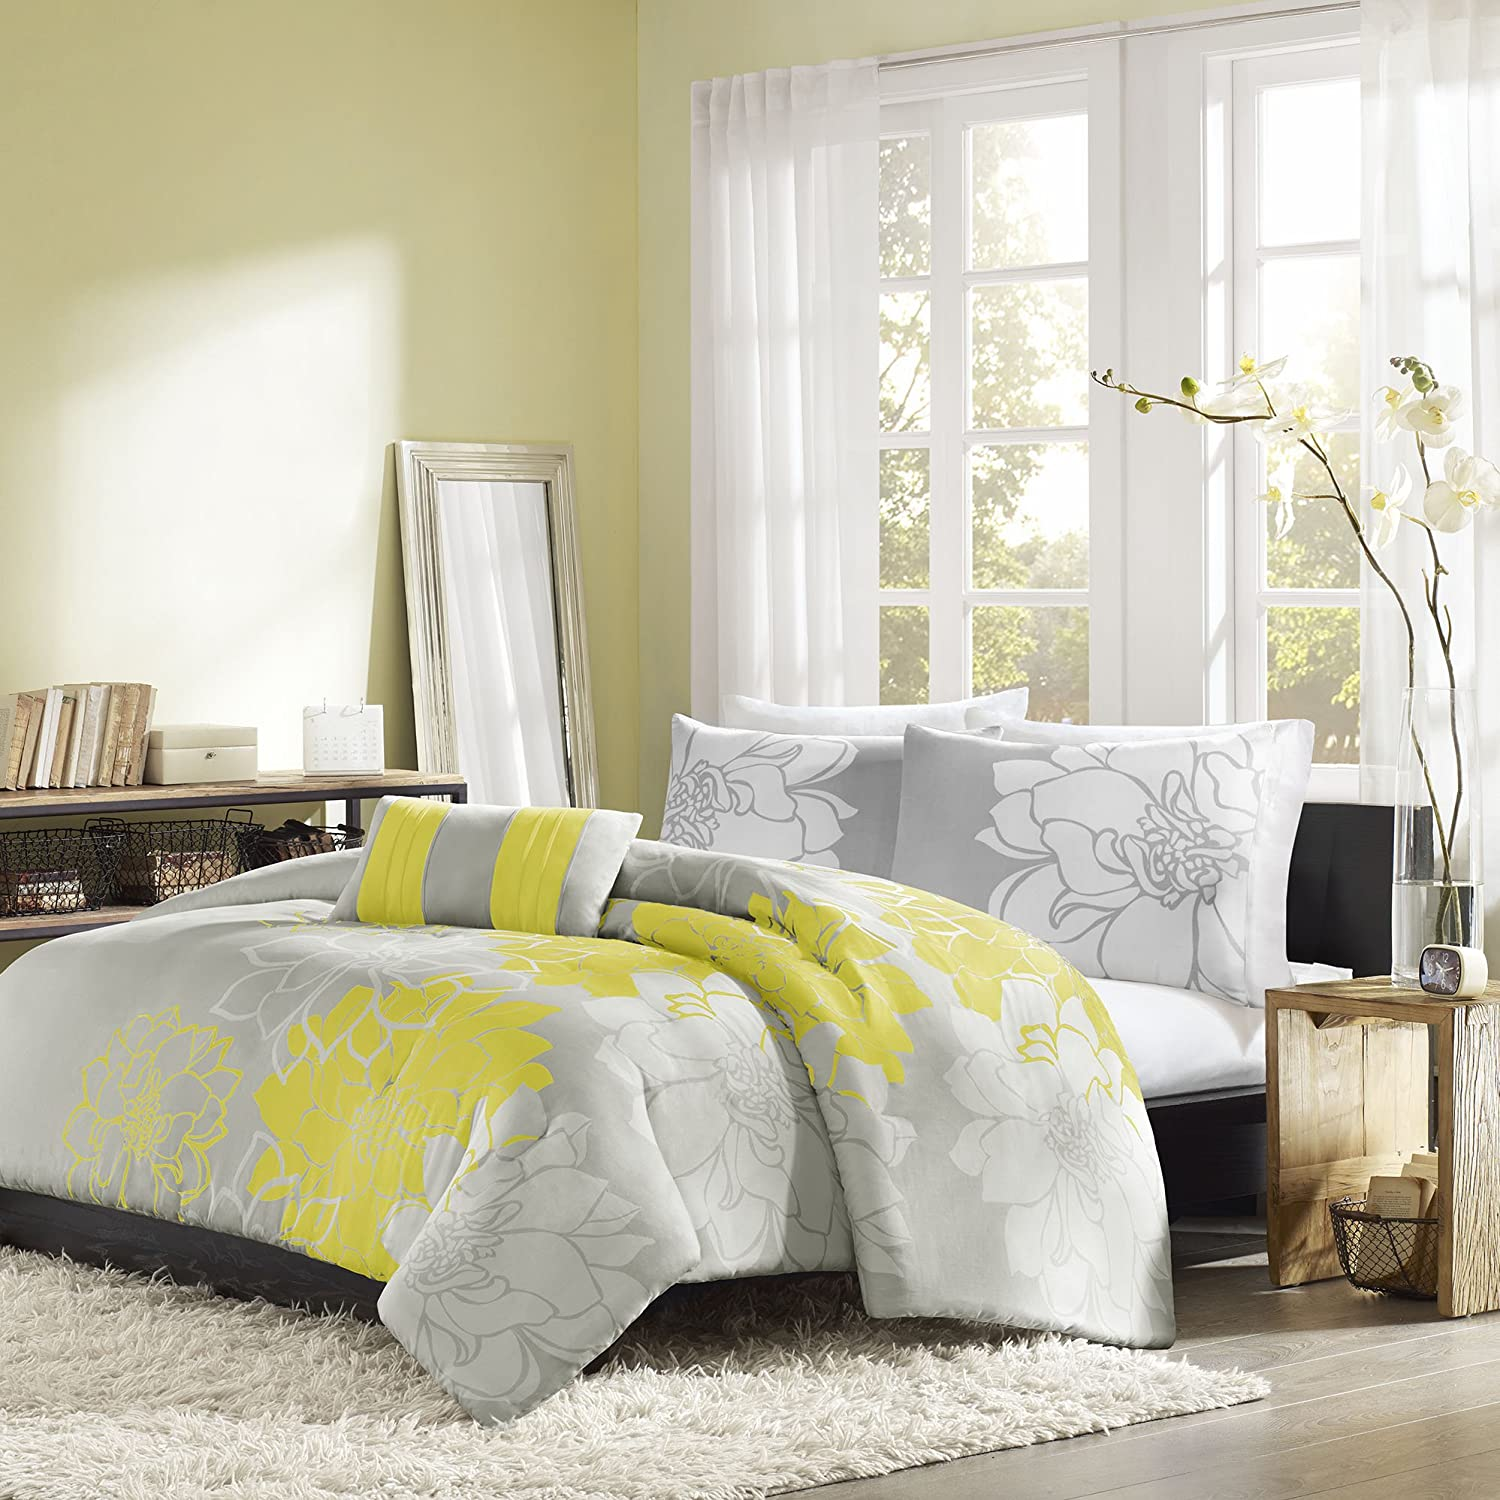 Home Essence Chloe 4-Piece Bedding Set, Queen, Yellow